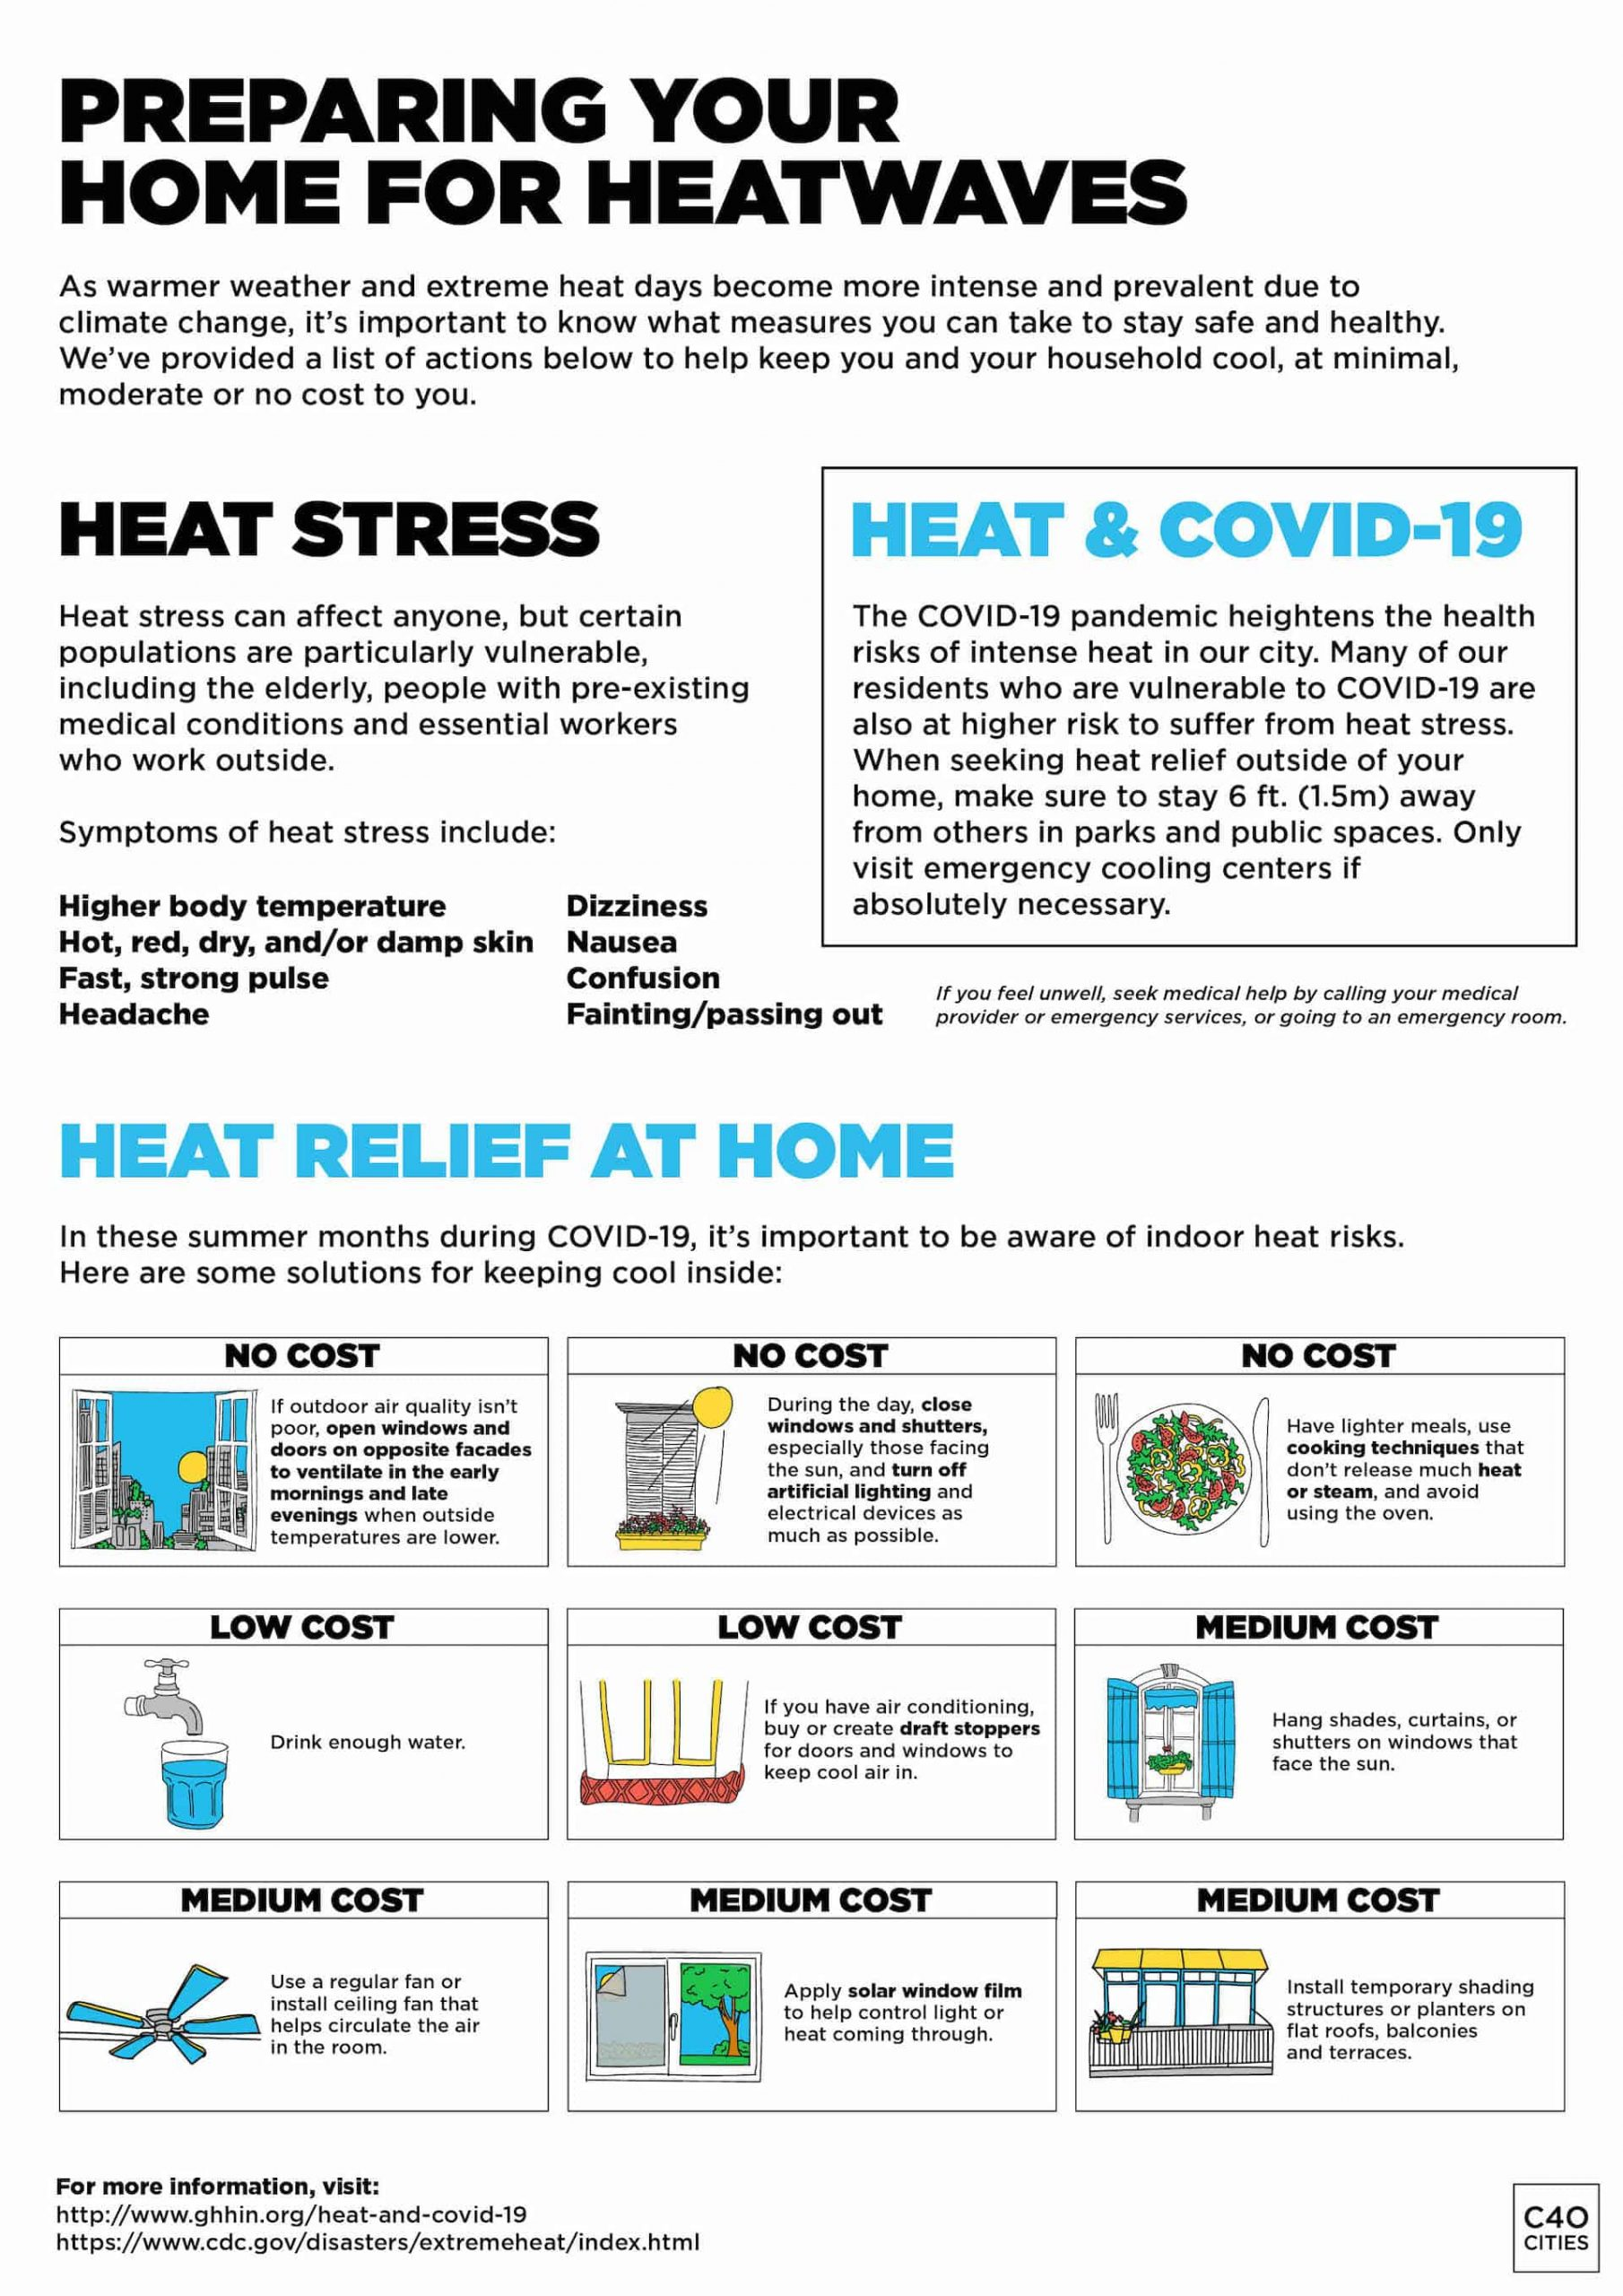 Home Cooling Tips during COVID-19 messaging toolkit for cities